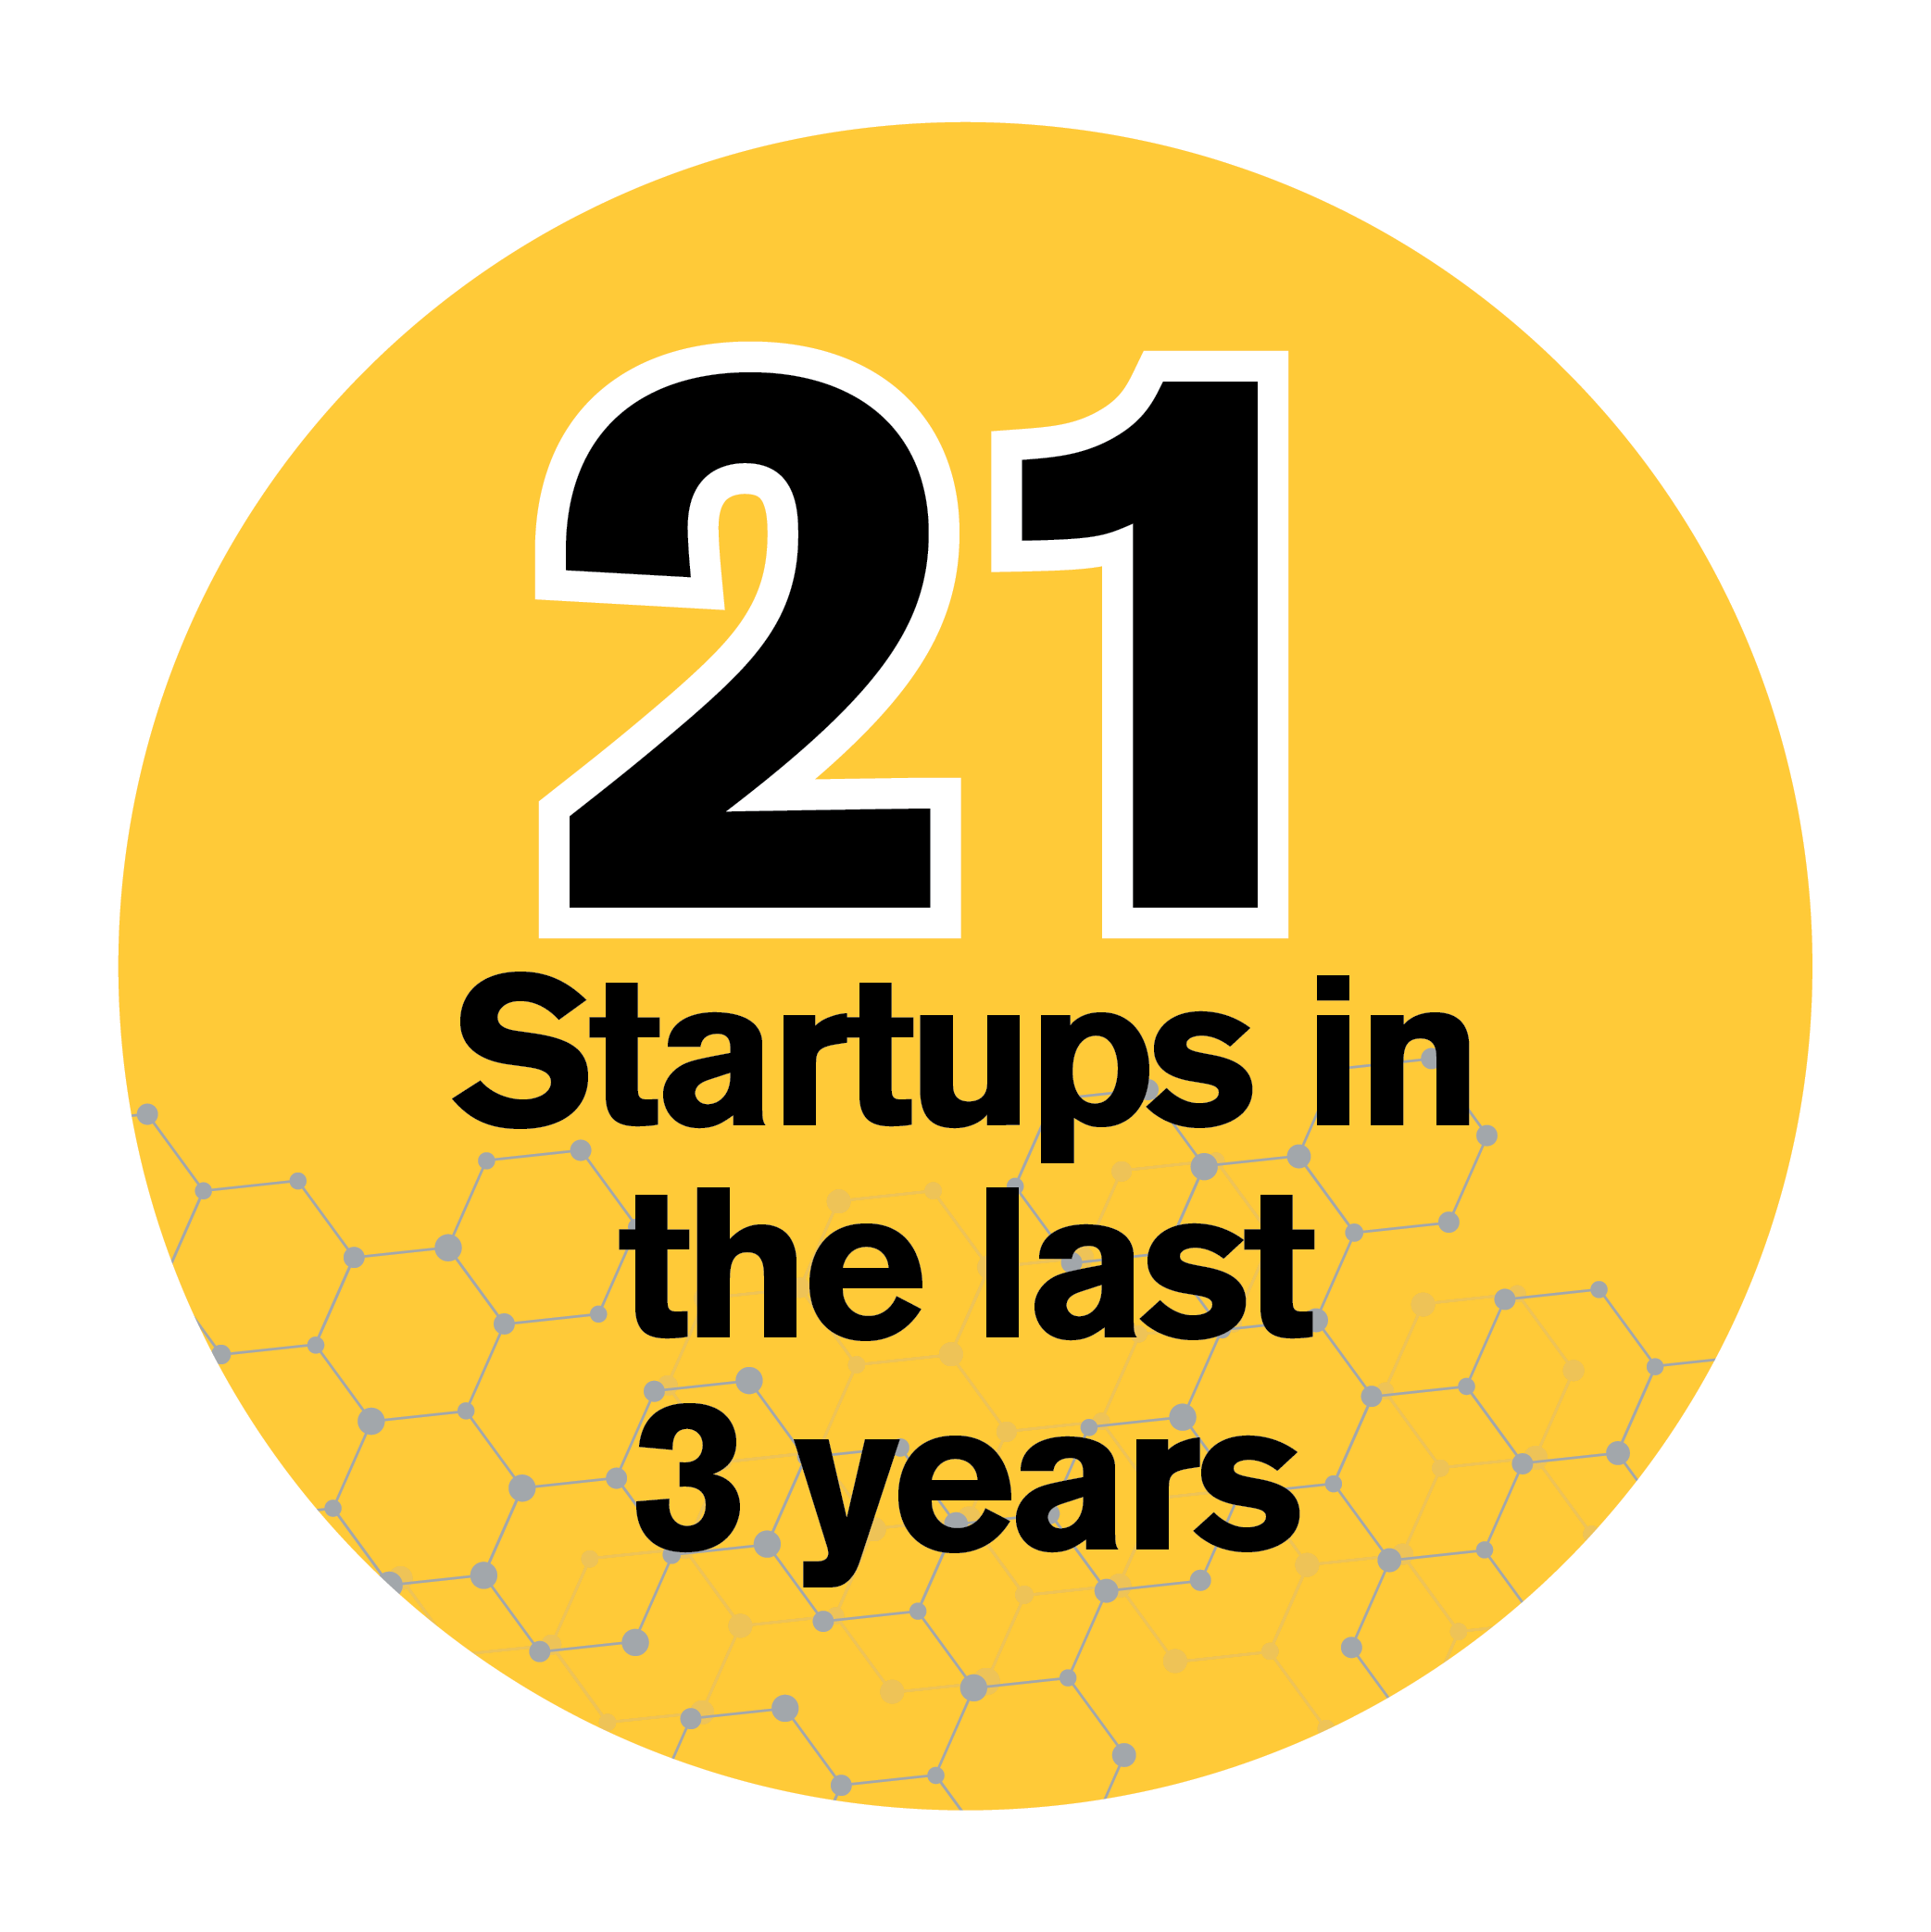 21 Startups in the last 3 years